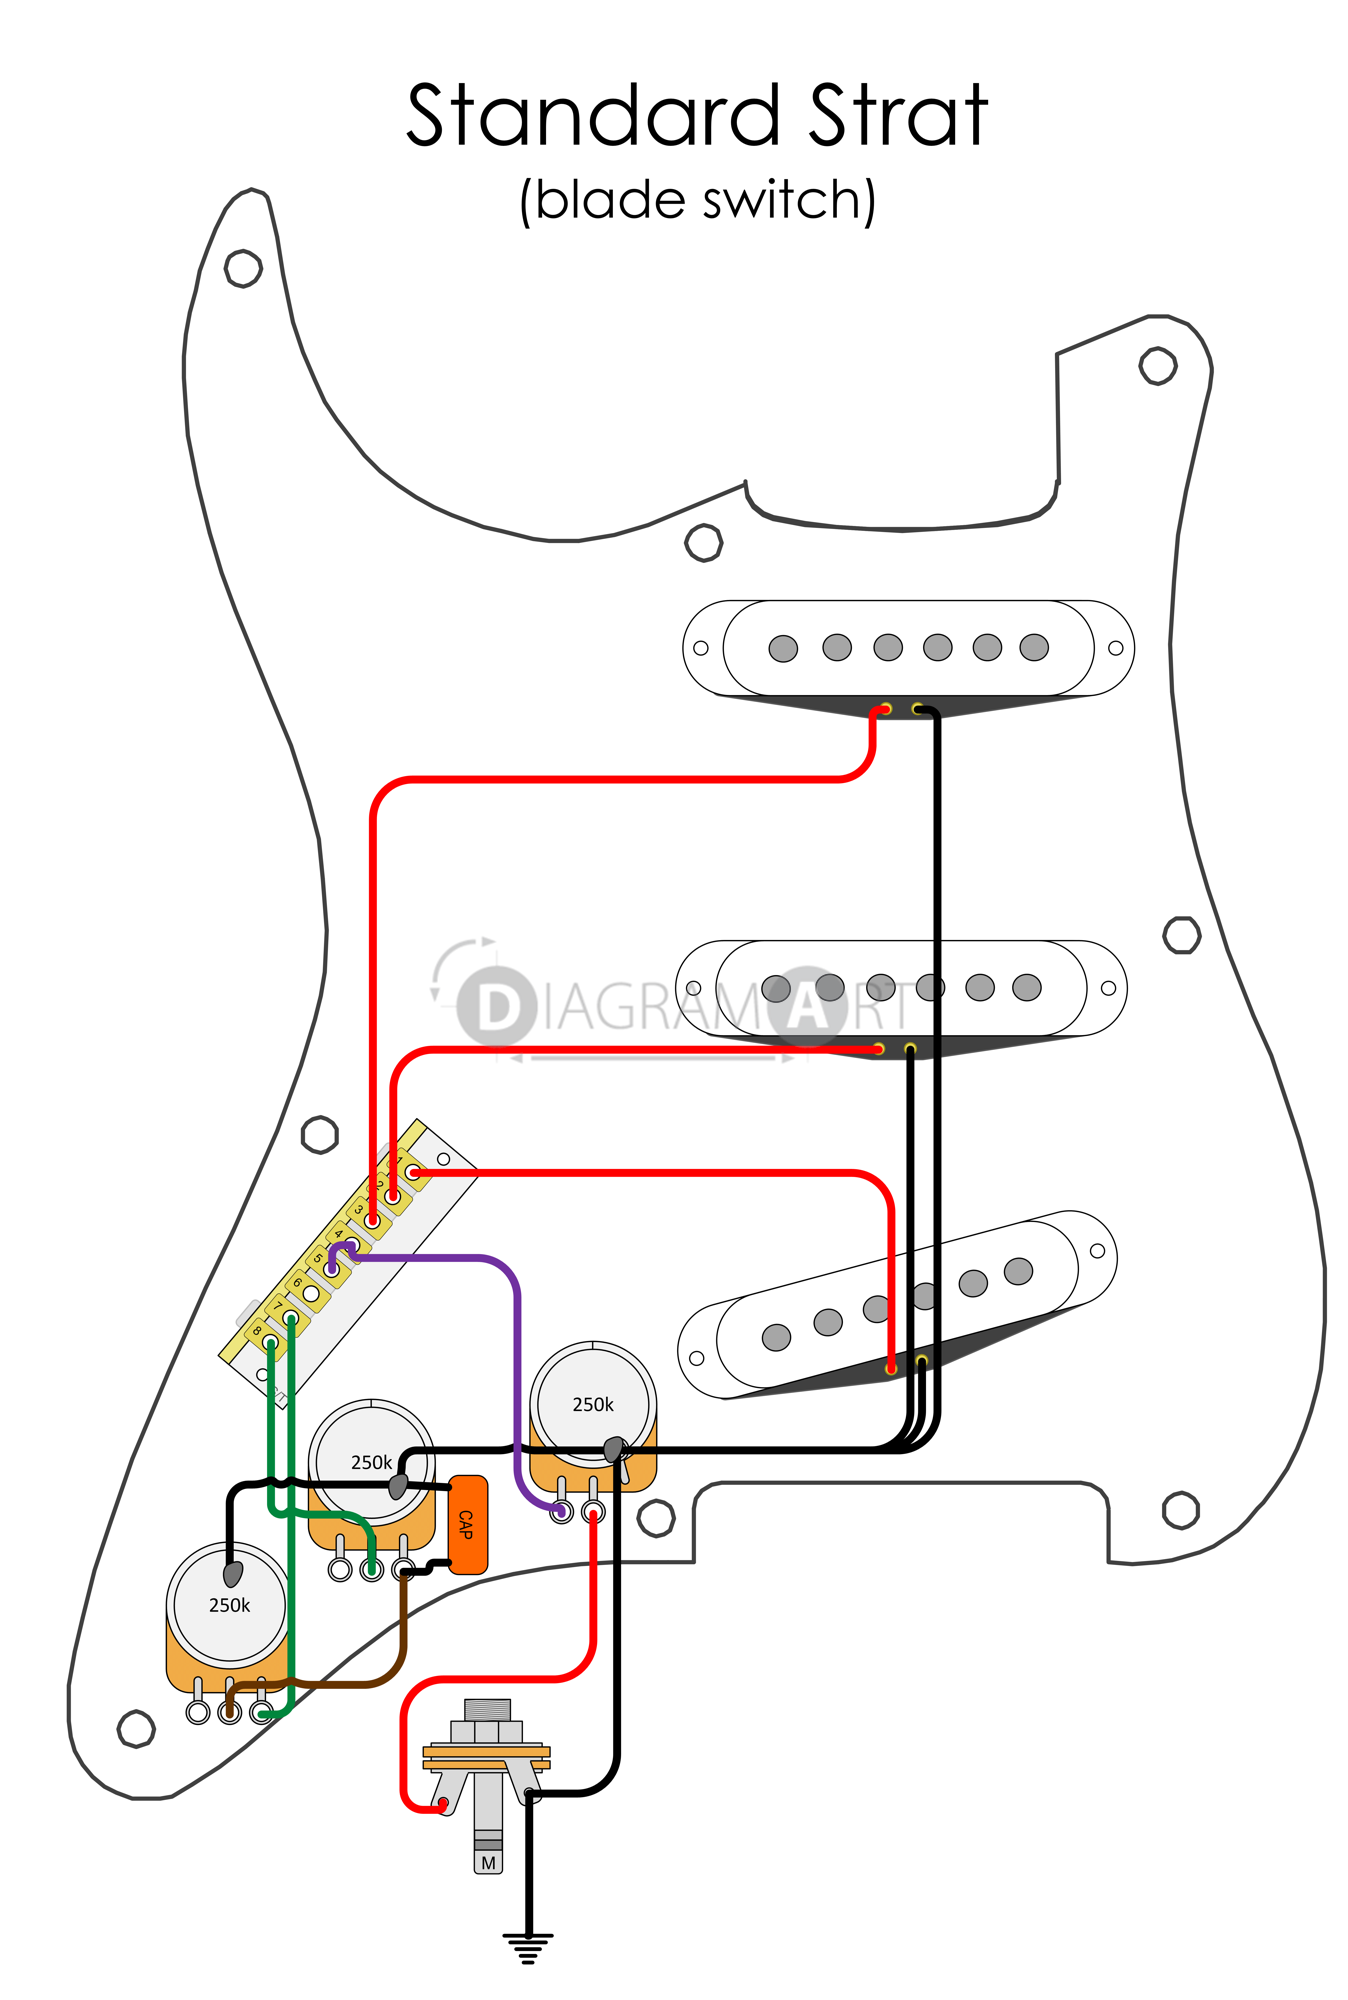 electric guitar wiring standard strat blade switch electric circuit free sketch. Black Bedroom Furniture Sets. Home Design Ideas